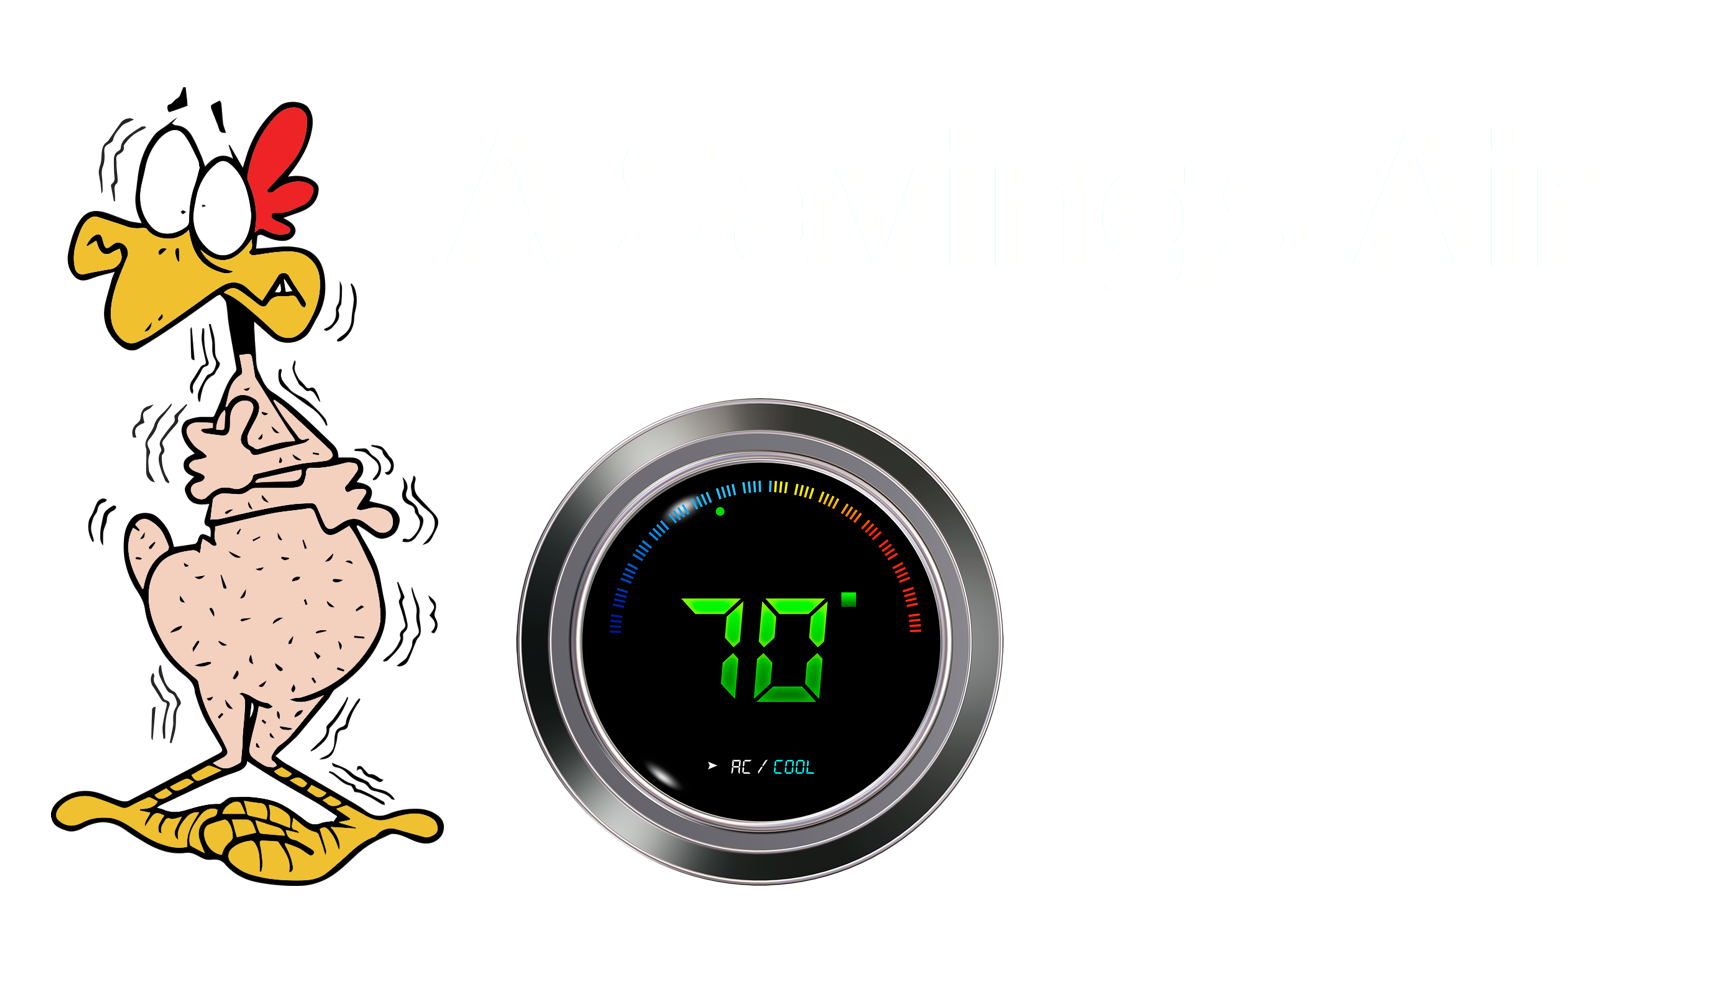 A Savings Air